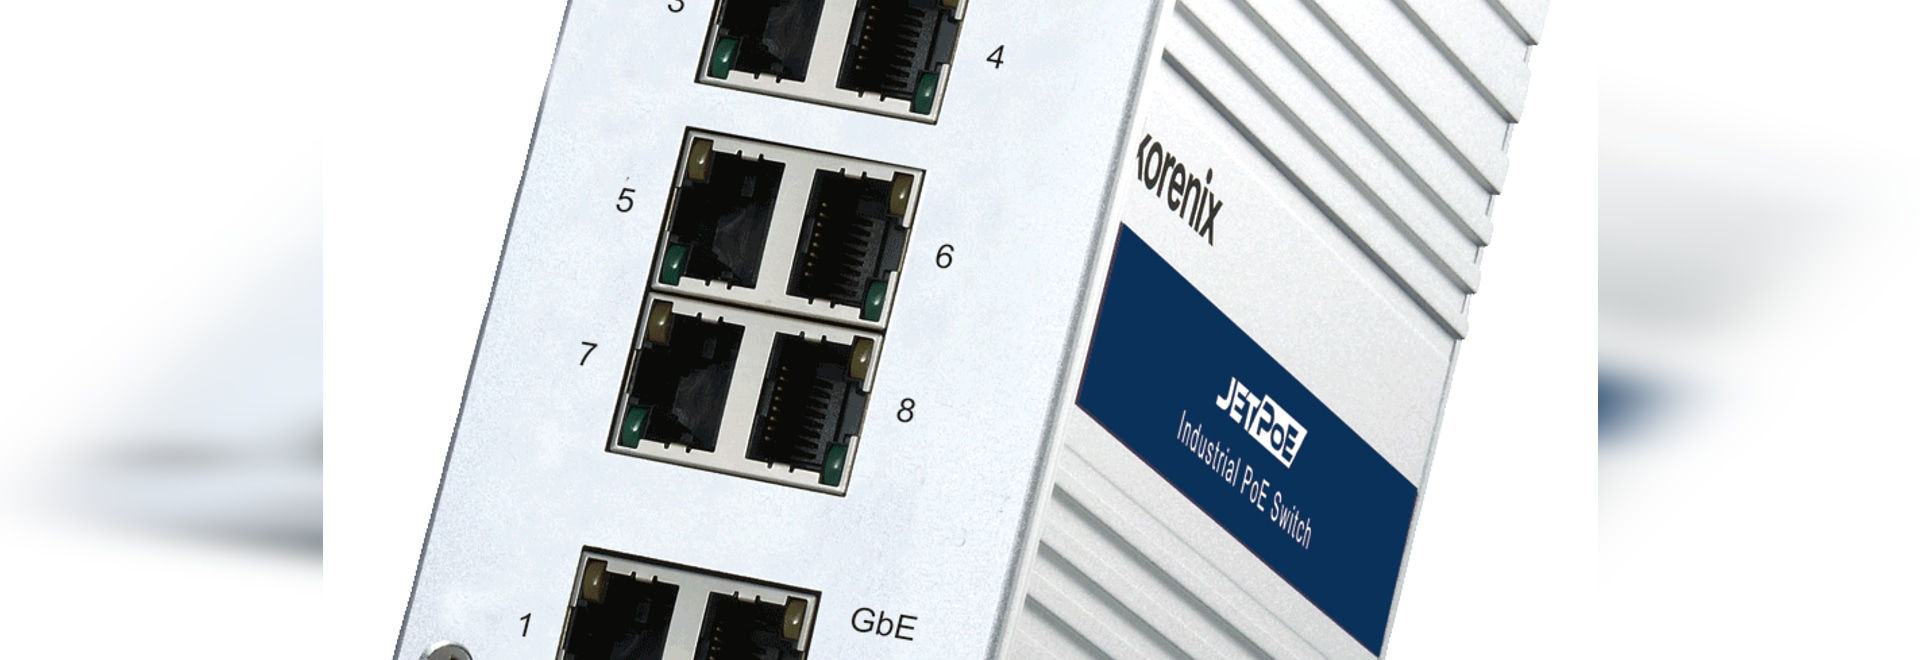 Korenix Launches New Industrial PoE Boost Switch for Transportation Surveillance